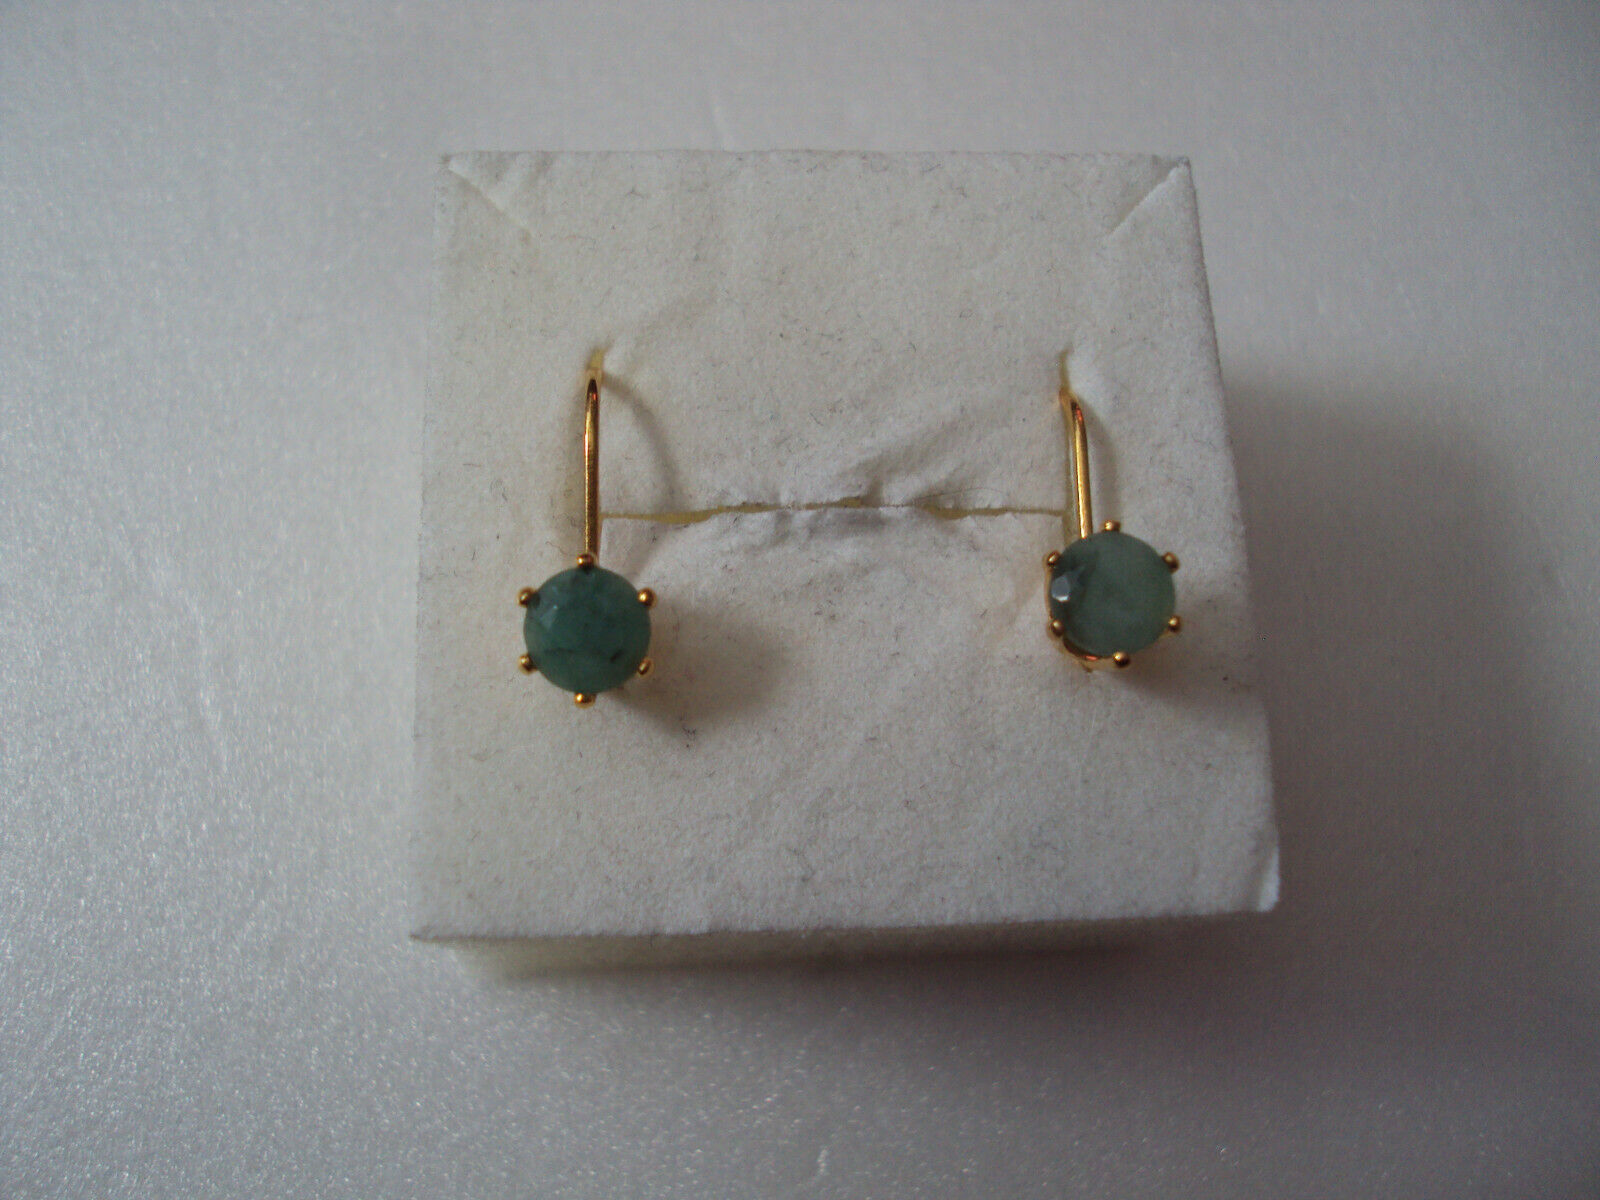 Emerald quartz 6mm yellow gold plated earrings DAD363